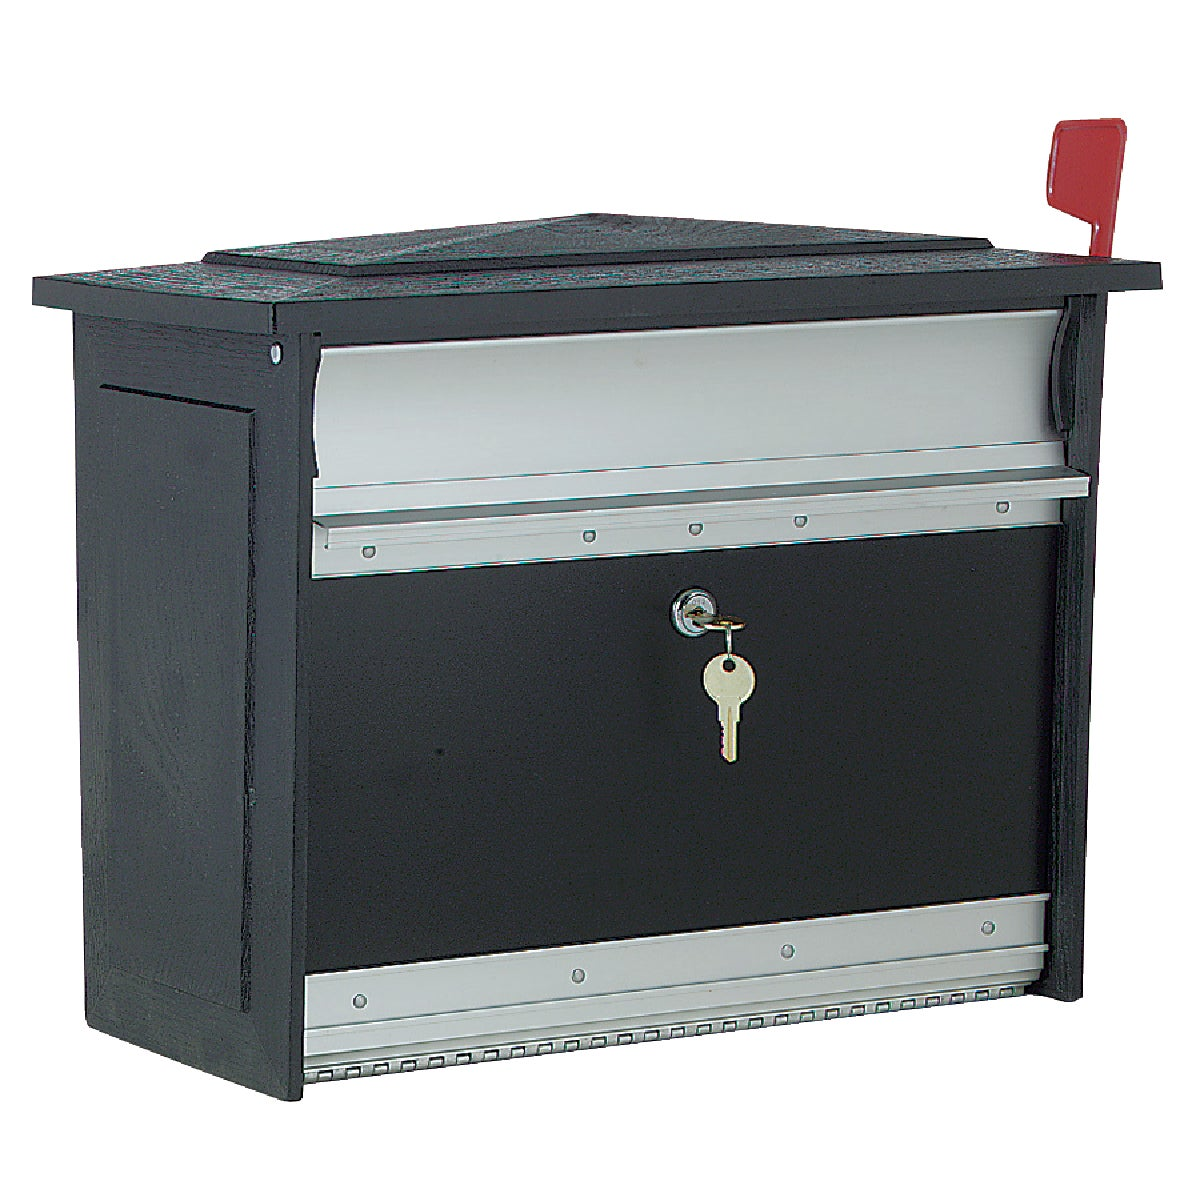 BLACK SECURITY MAILBOX - MSK by Solar Group